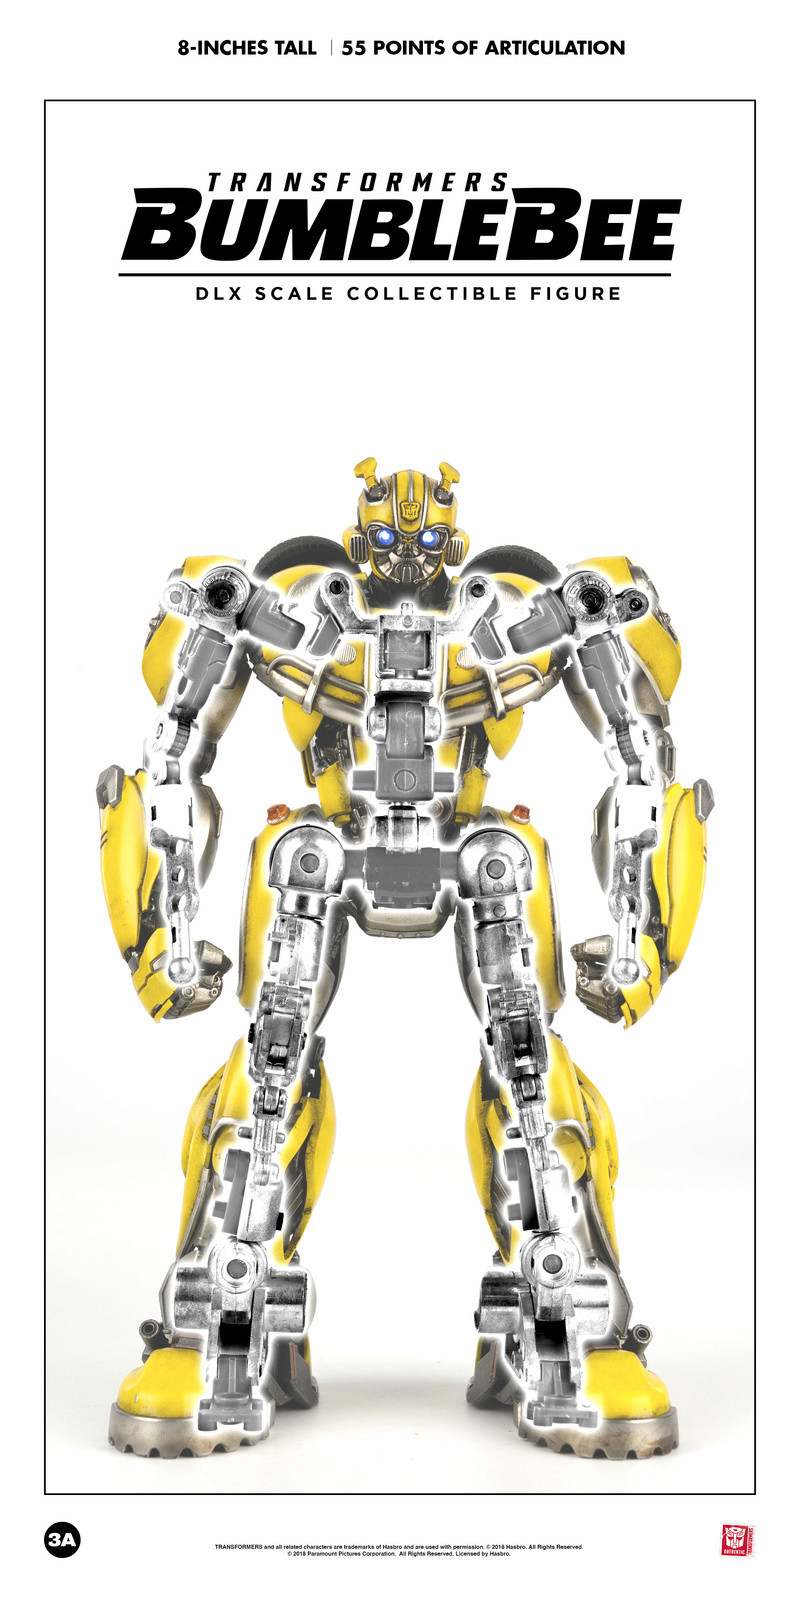 Transformers Bumblebee DLX and Premium Scale Collectible Figures  Bbb_dl29